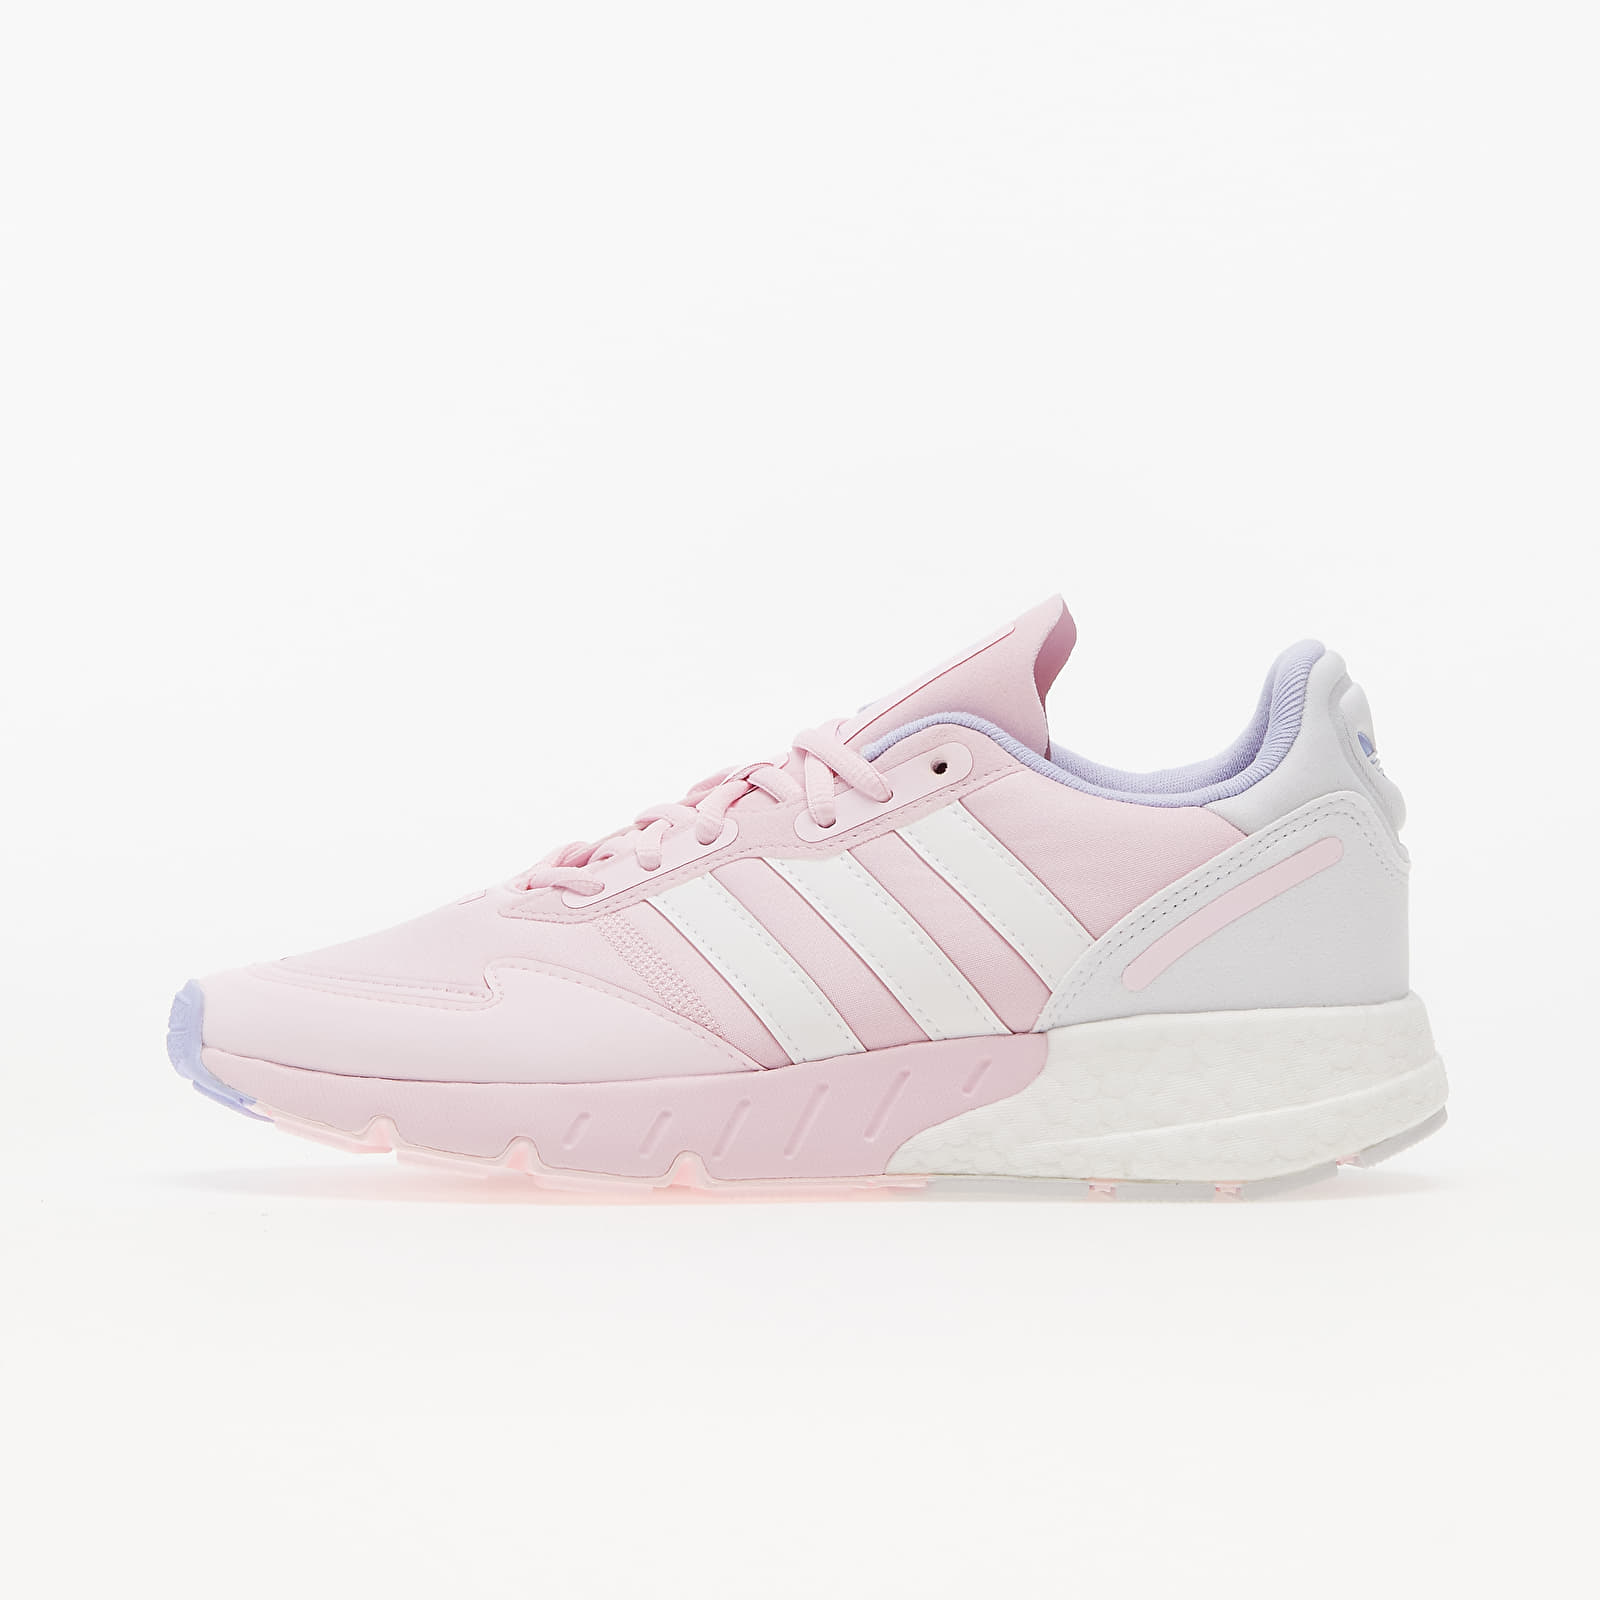 adidas ZX 1K Boost W Clear Pink/ Ftw White/ Violet Tone EUR 40